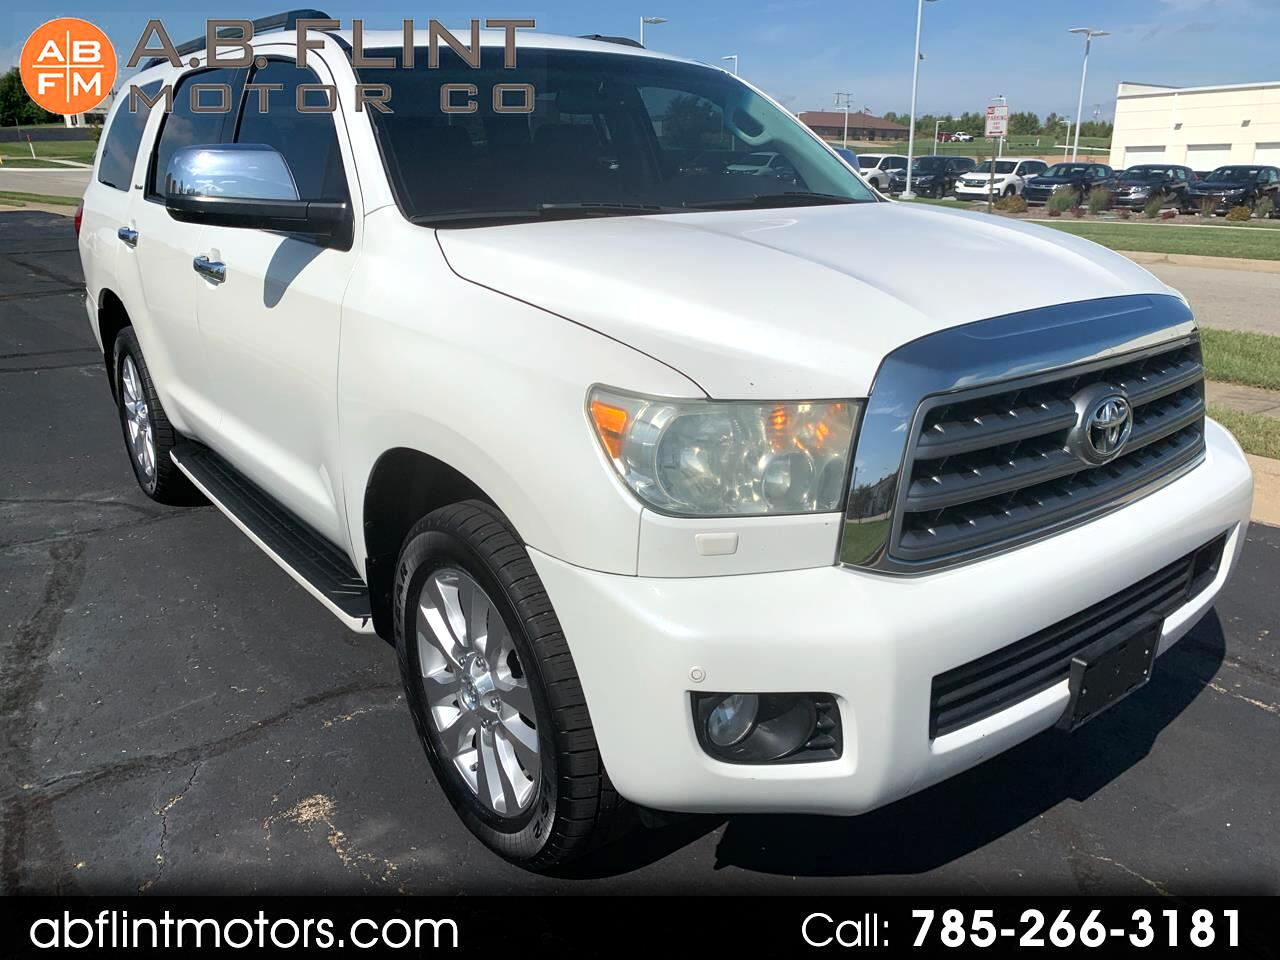 Toyota Sequoia 4WD 4dr LV8 6-Spd AT Platinum (Natl) 2010